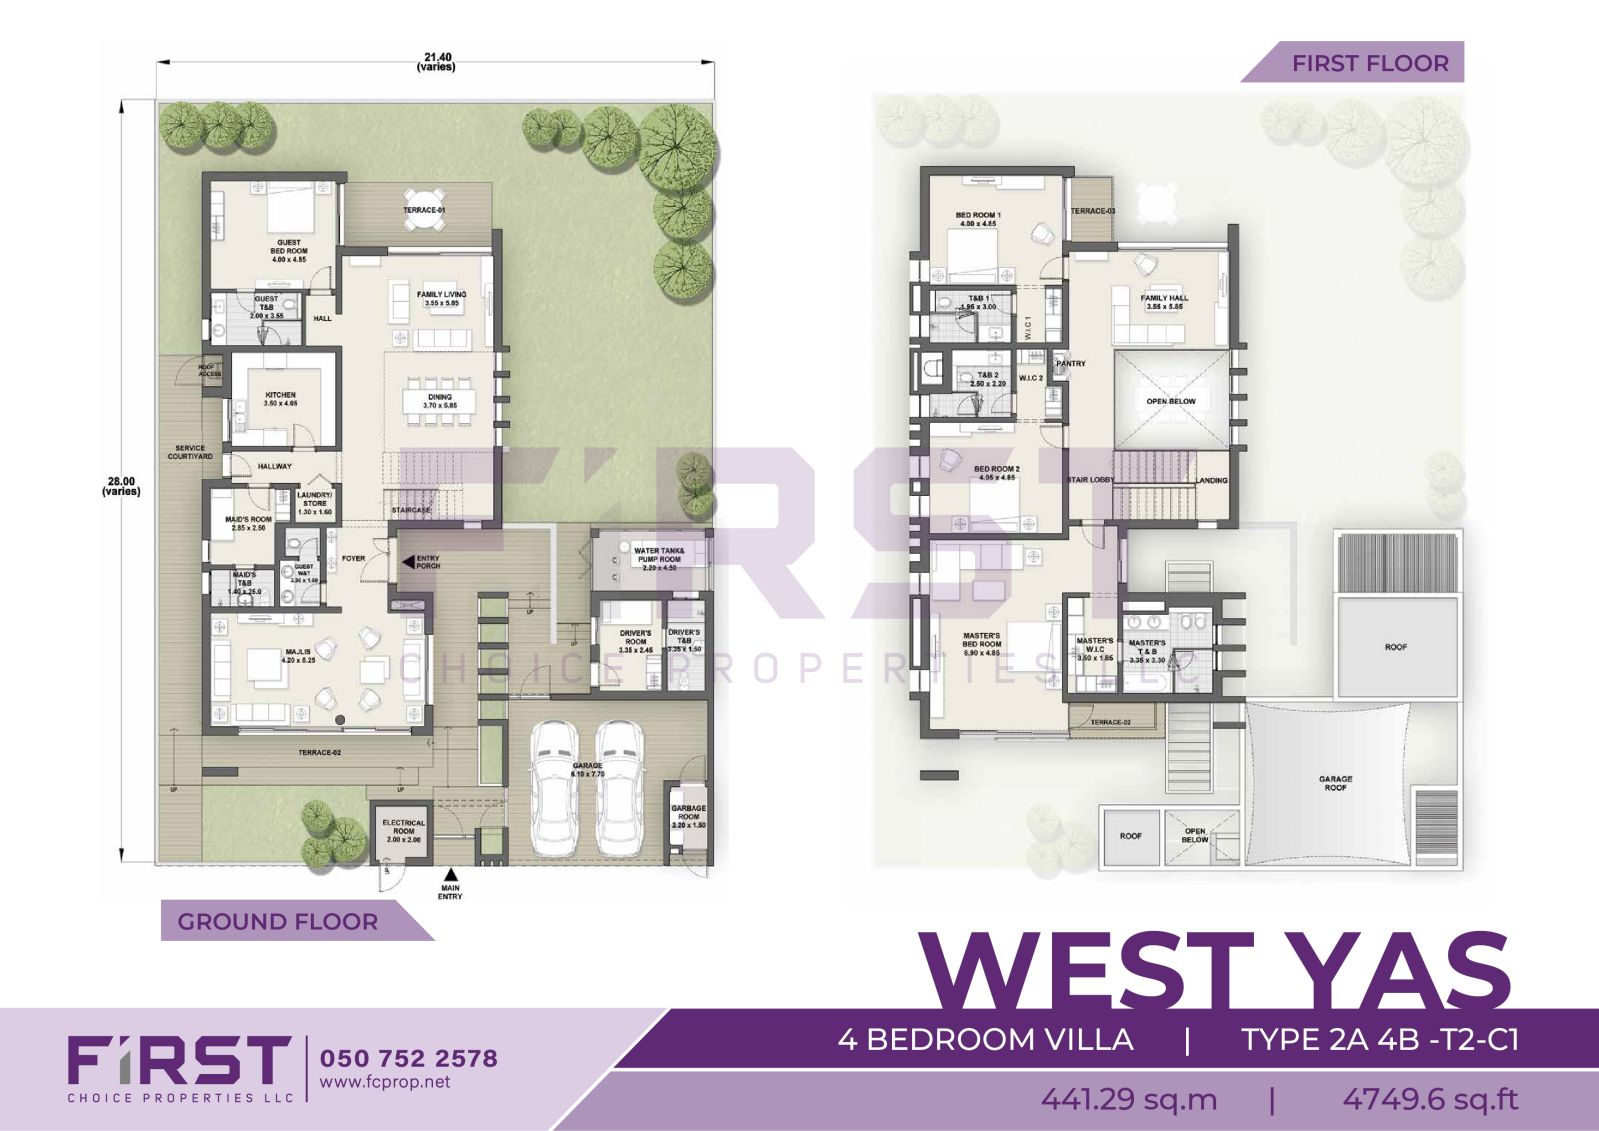 Yas Island West Yas 4 Bedroom VIlla TYPE 2A 4B-T2-C1 441.29 sq.m 4749.6 sq.ft.jpg